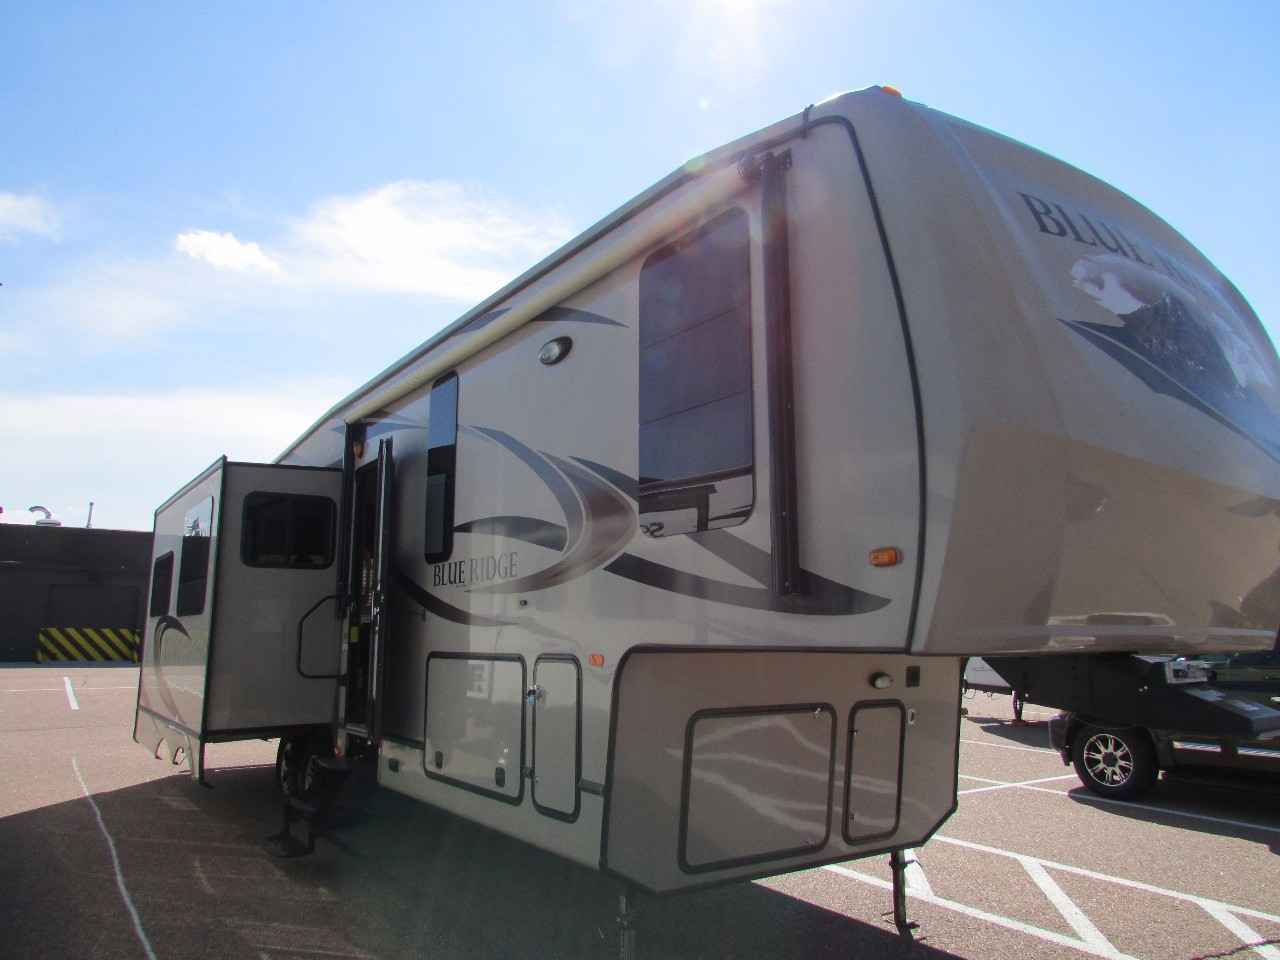 2012 Used Forest River Blue Ridge 3025rl Fifth Wheel In